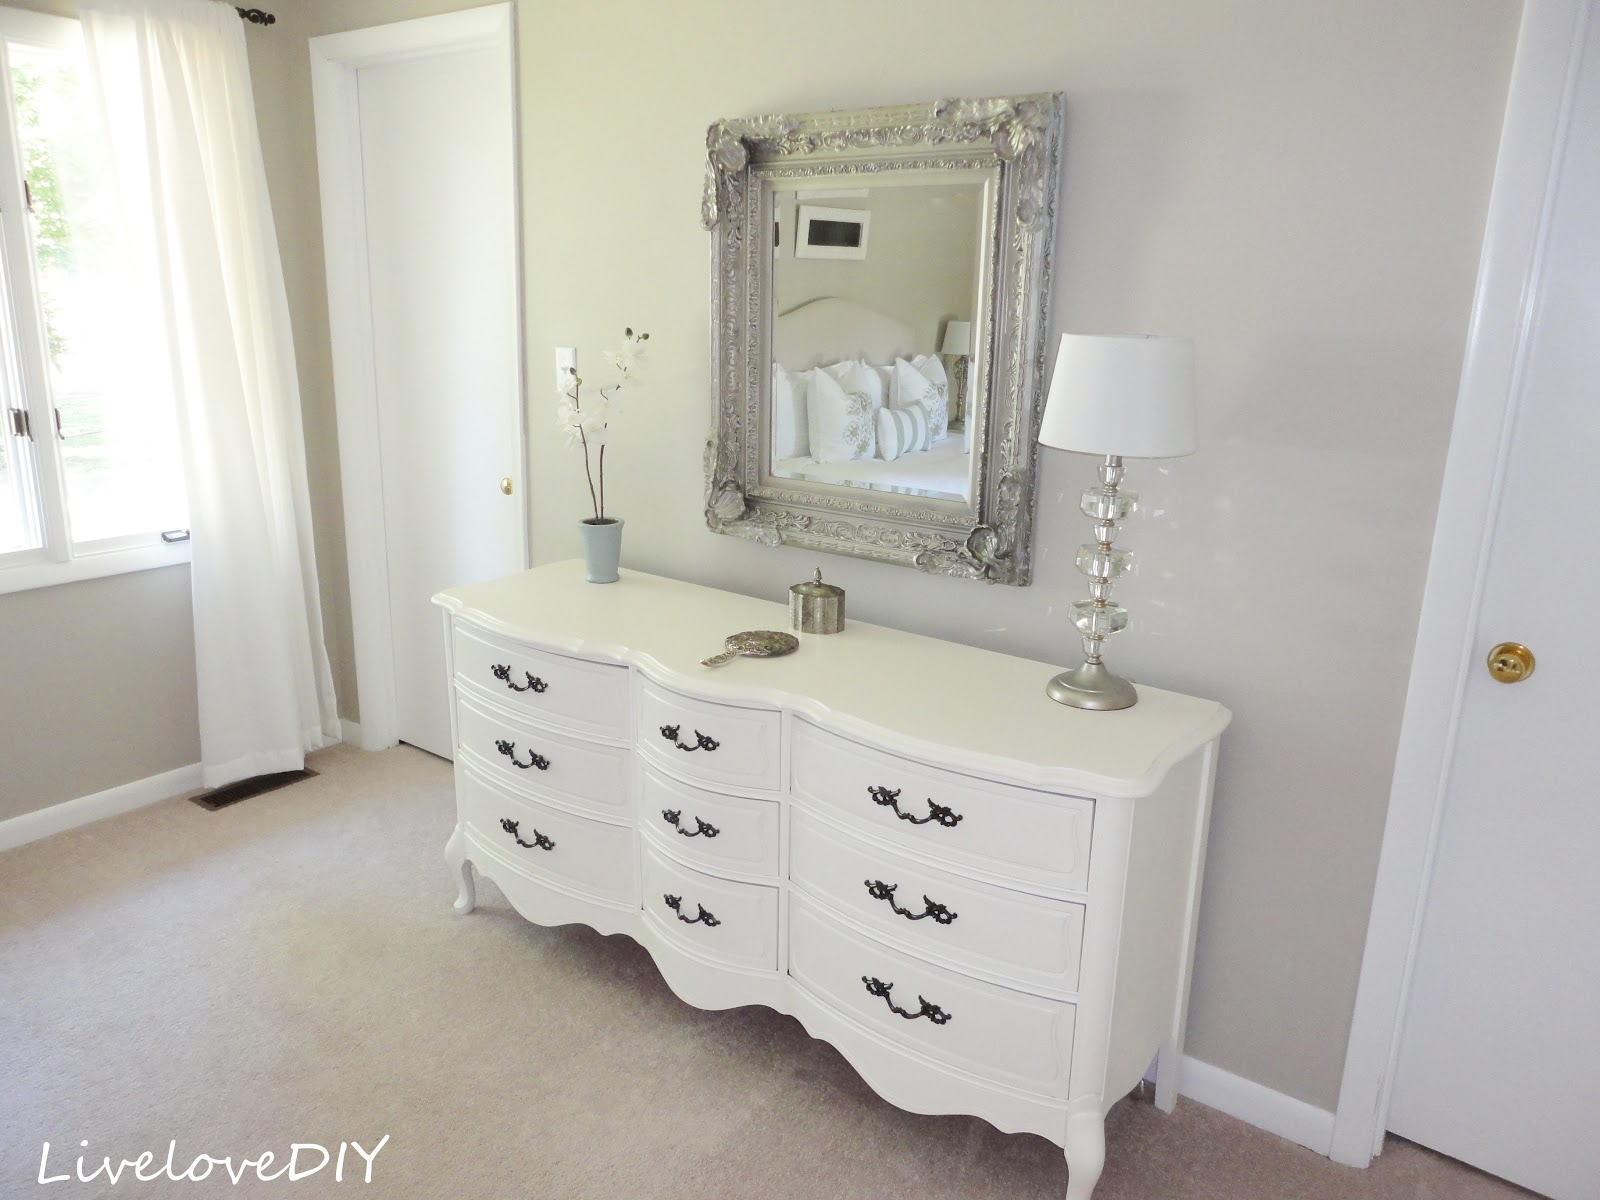 Decorating Bathroom Mirrors Decorate A Bathroom Bathroom Wall On Pinterest A Selection Of The